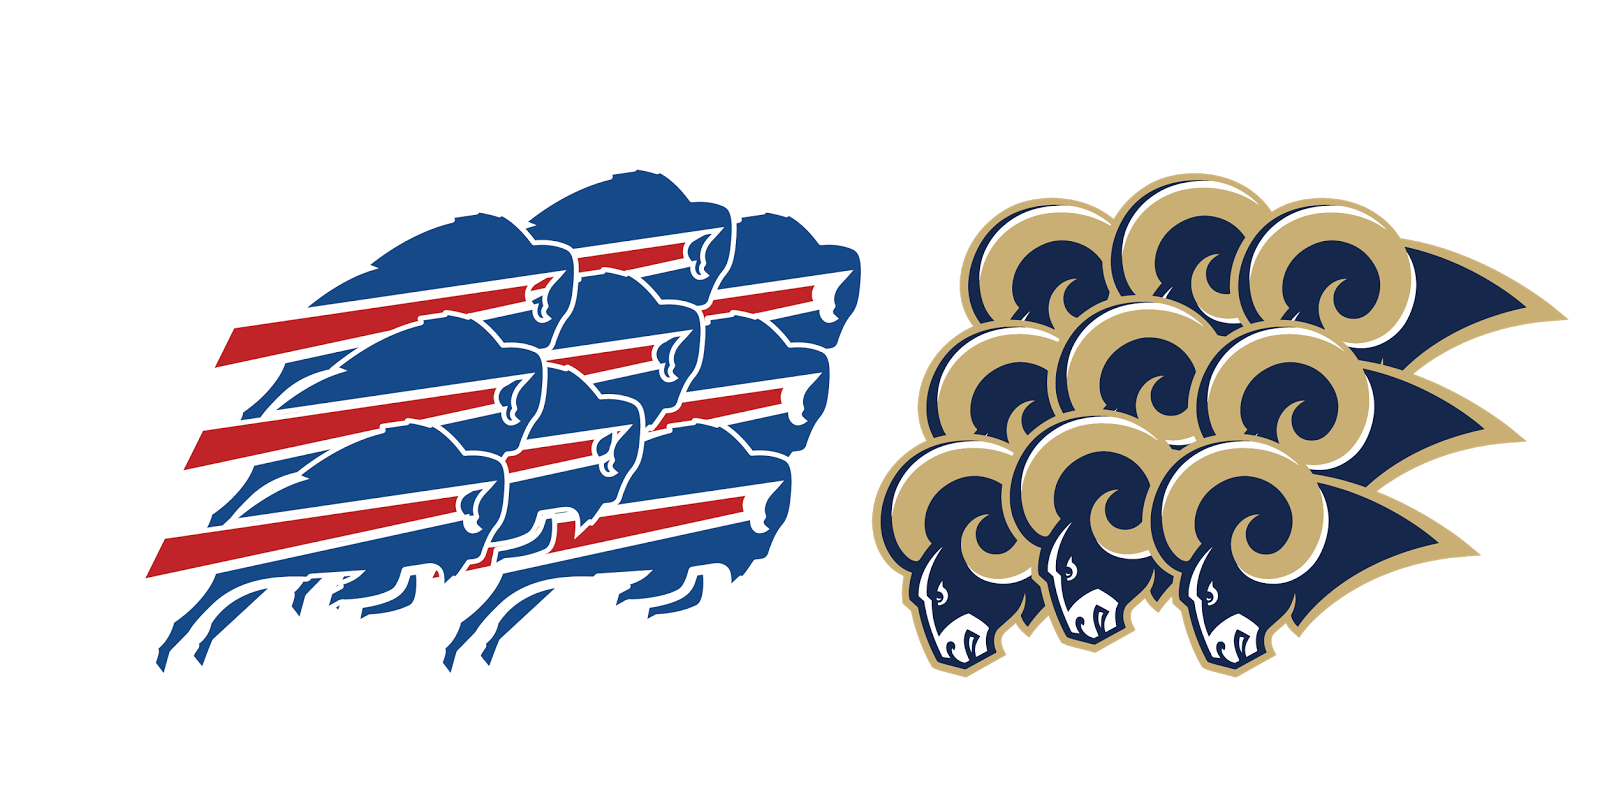 Buffalo Bills and Saint Louis Rams, metal, logo, re-imagined